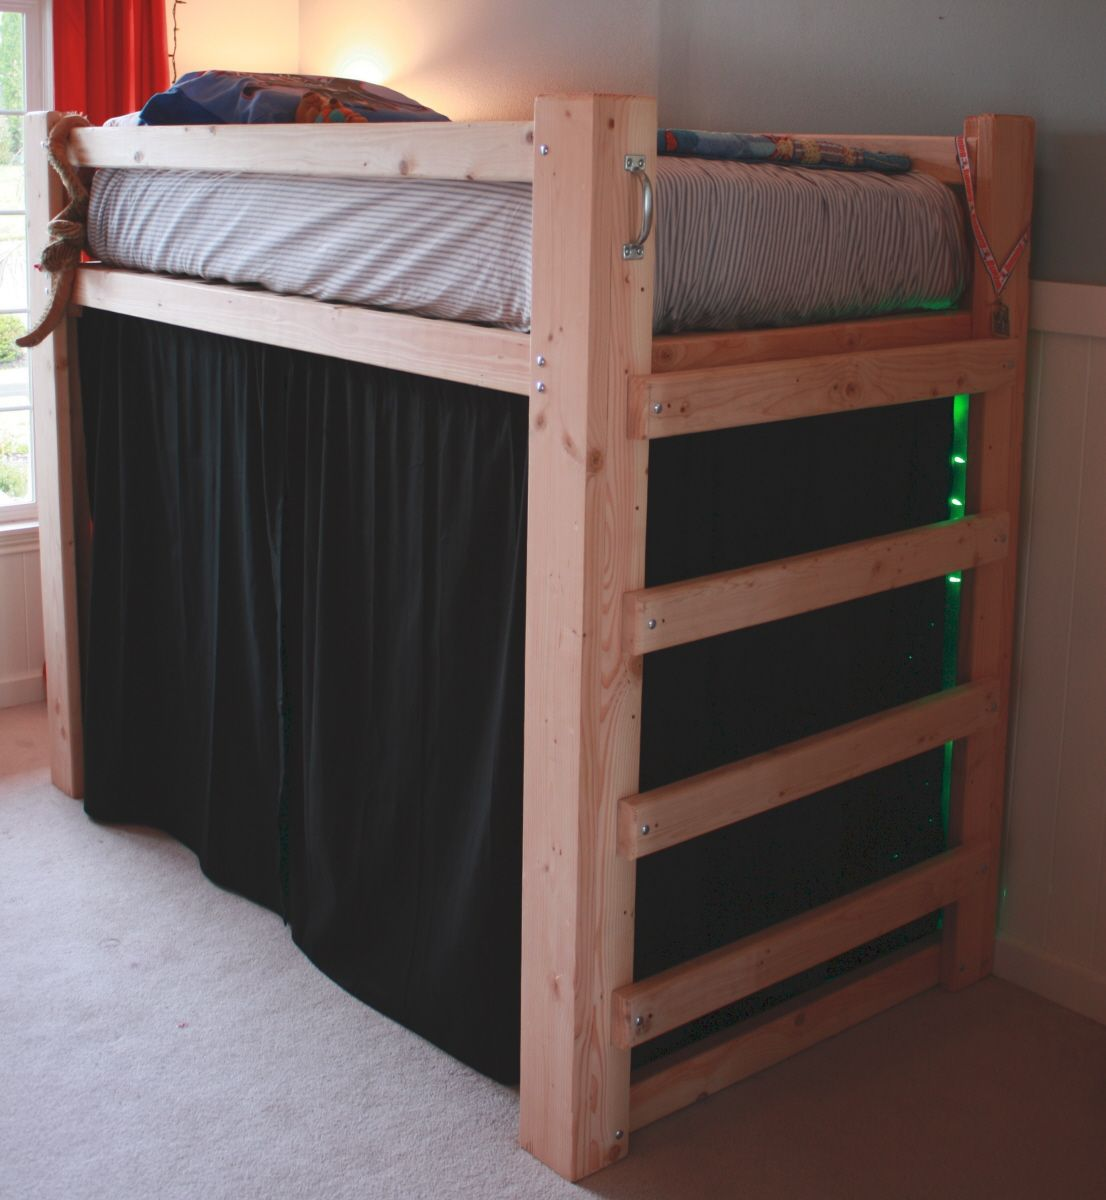 Loft bed for merri furniture ideas pinterest lofts for How to make a loft room